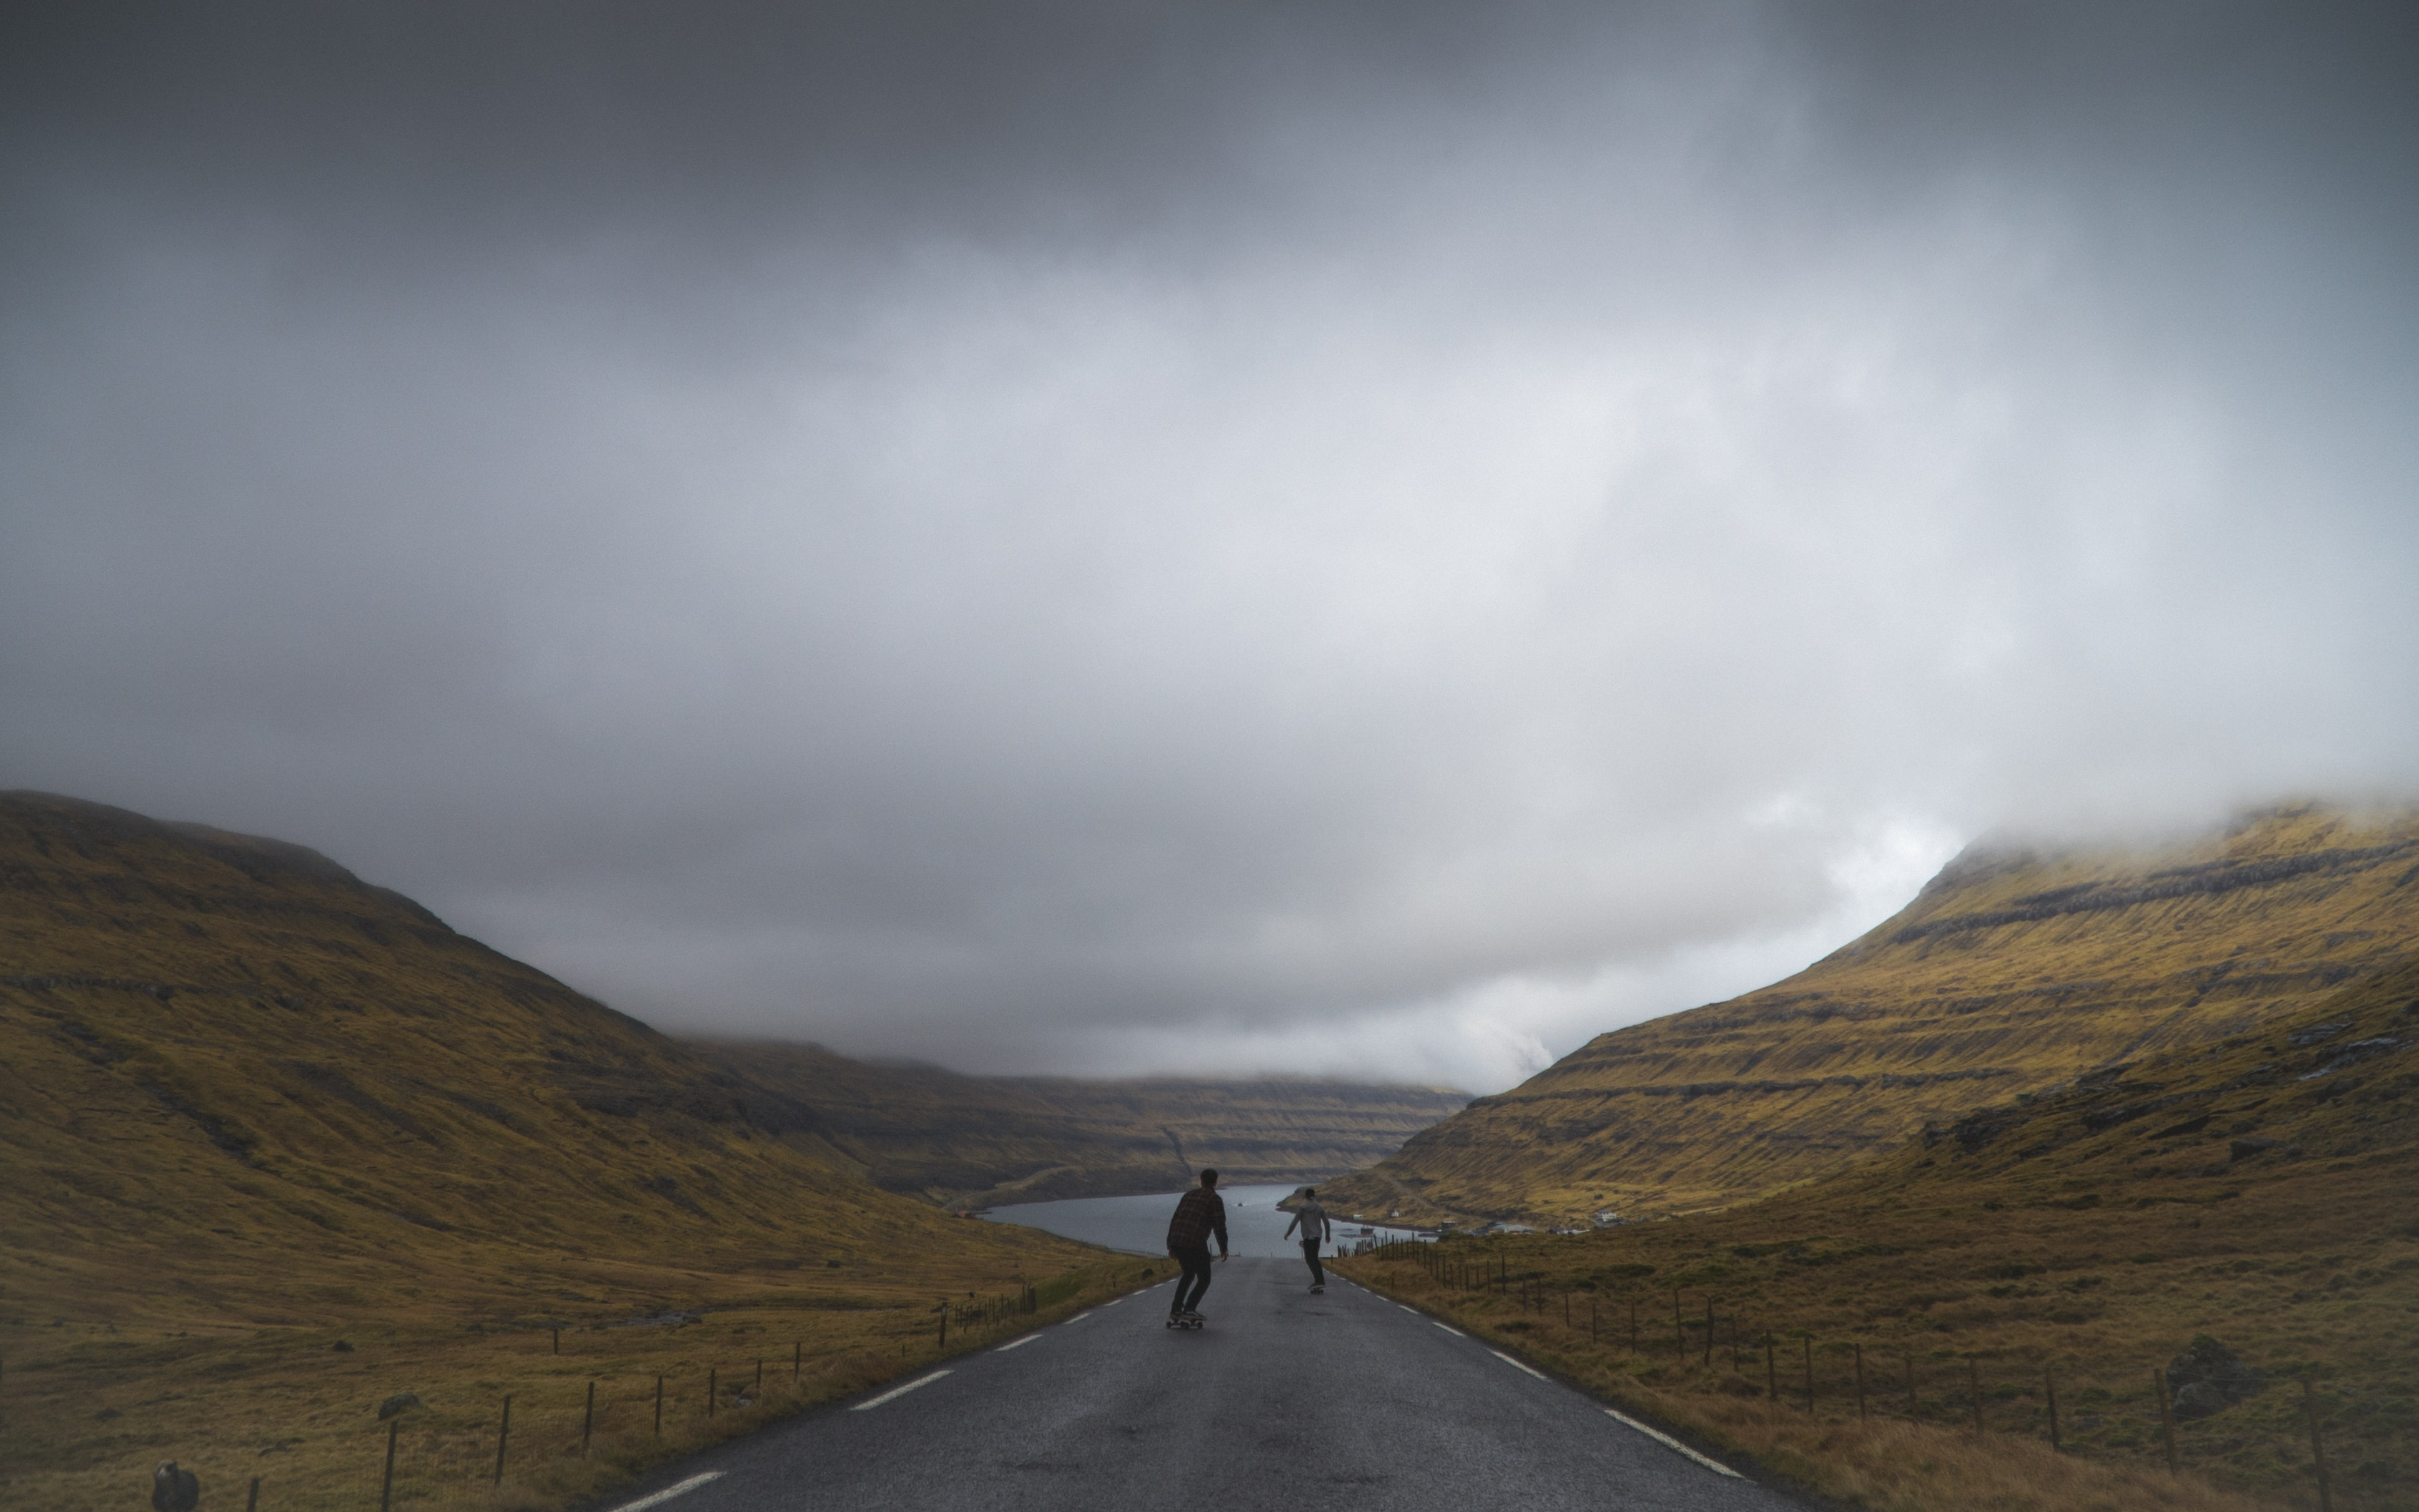 person in black jacket standing on road under cloudy sky